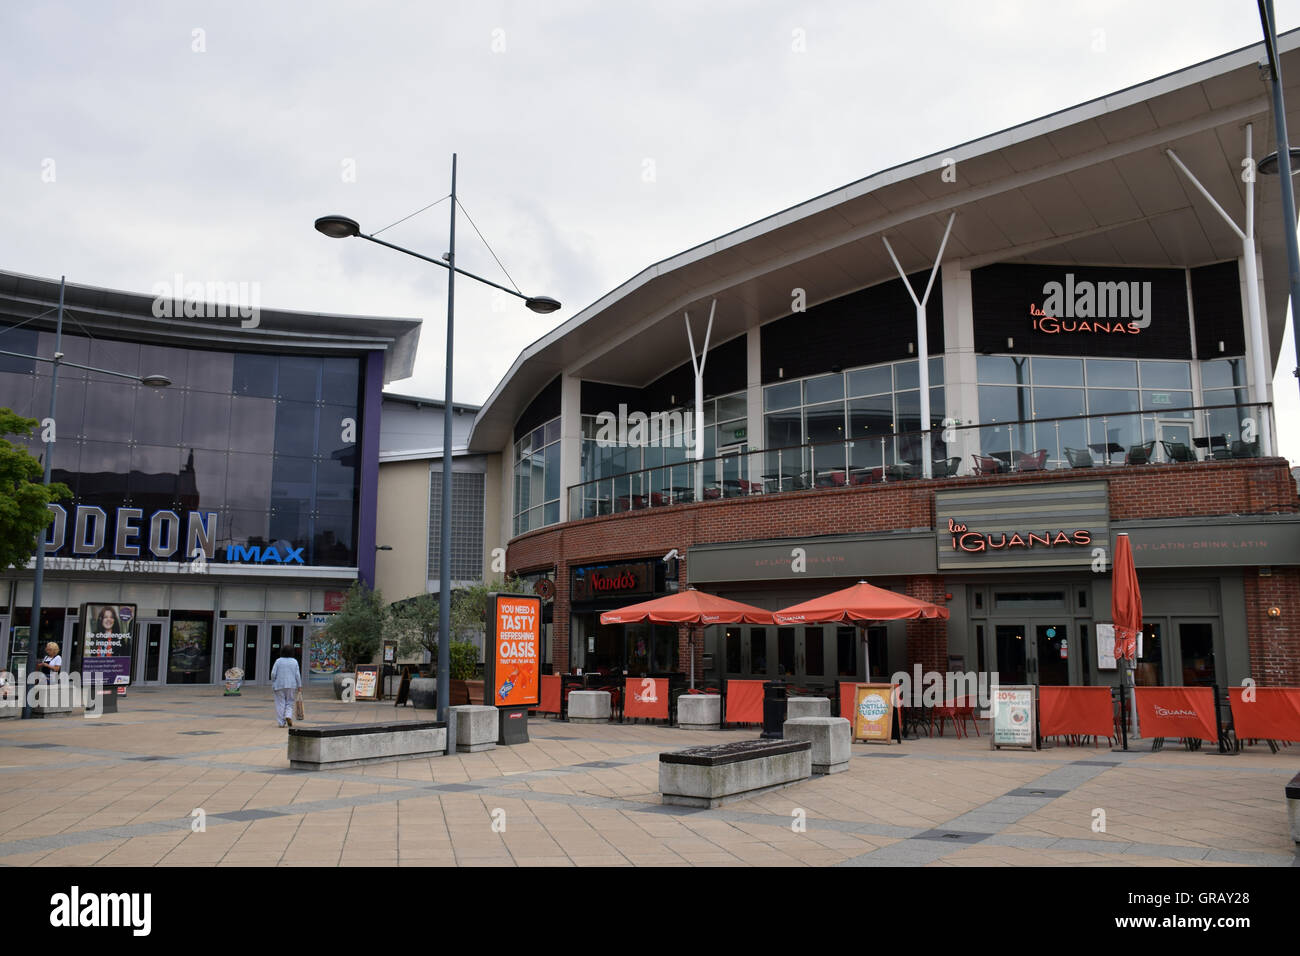 Riverside leisure complex, Norwich, Norfolk 2016 - Stock Image